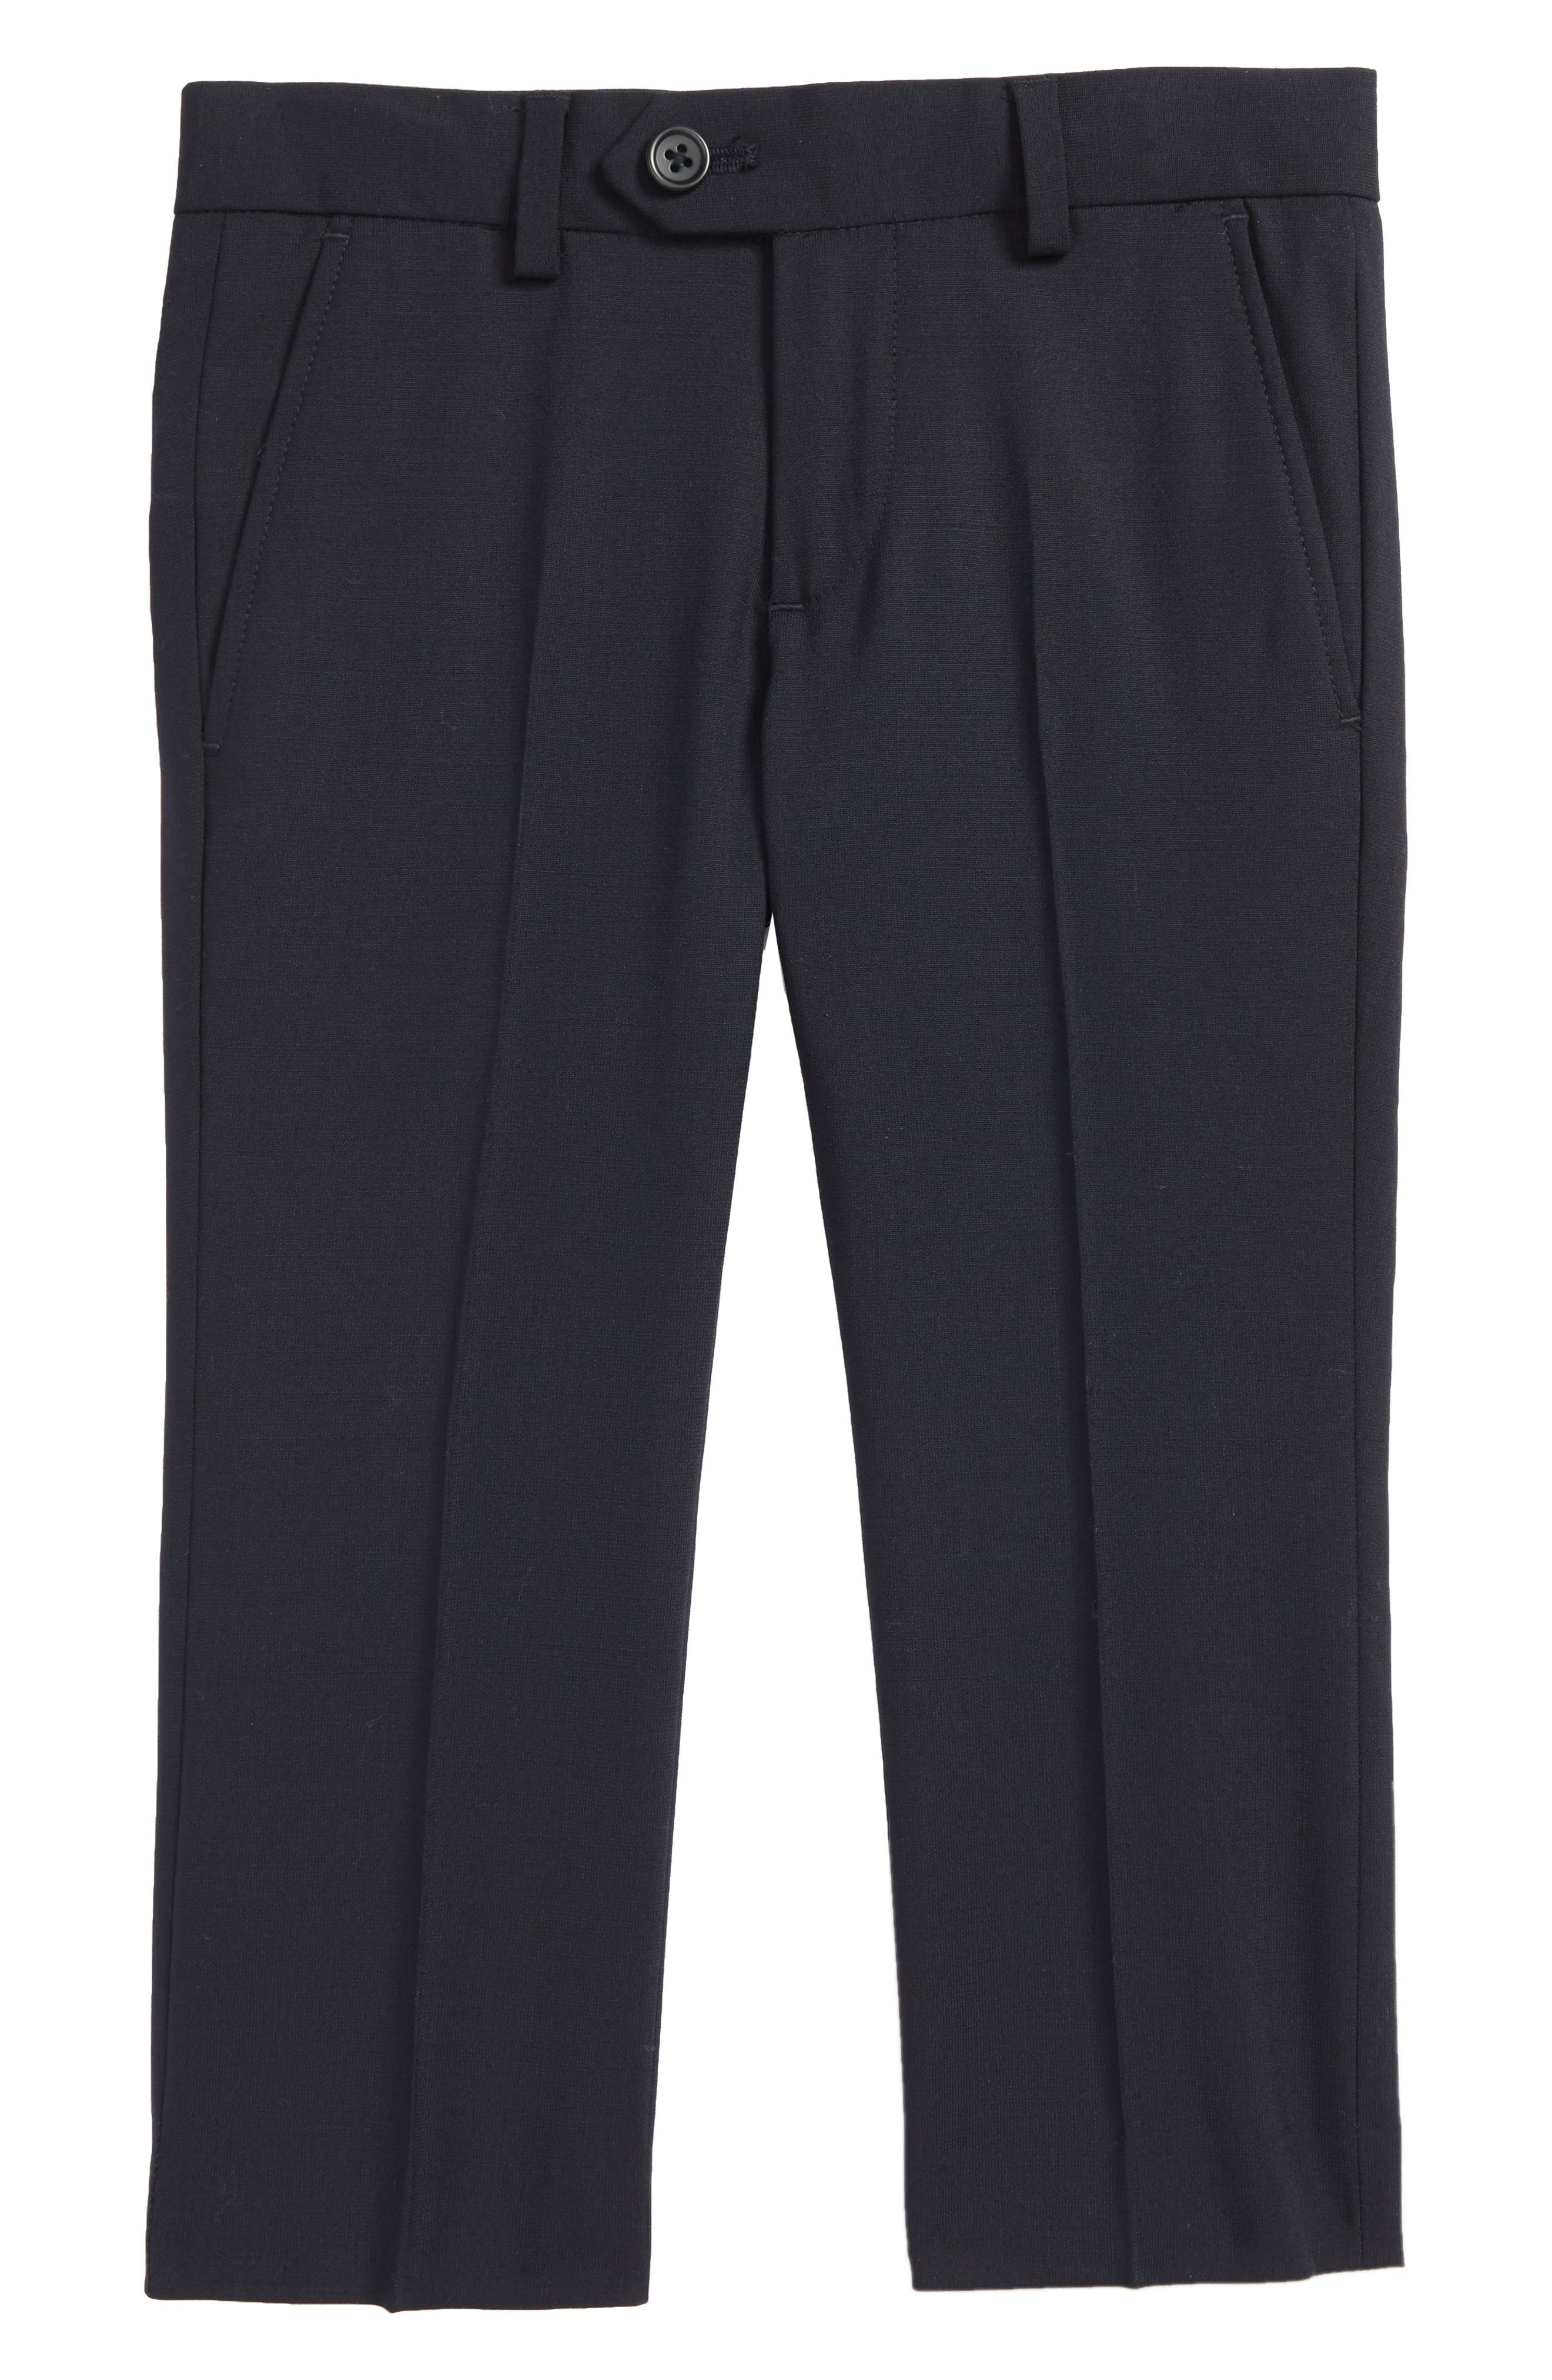 Solid Flat Front Wool Blend Trousers,                         Main,                         color, BLACK